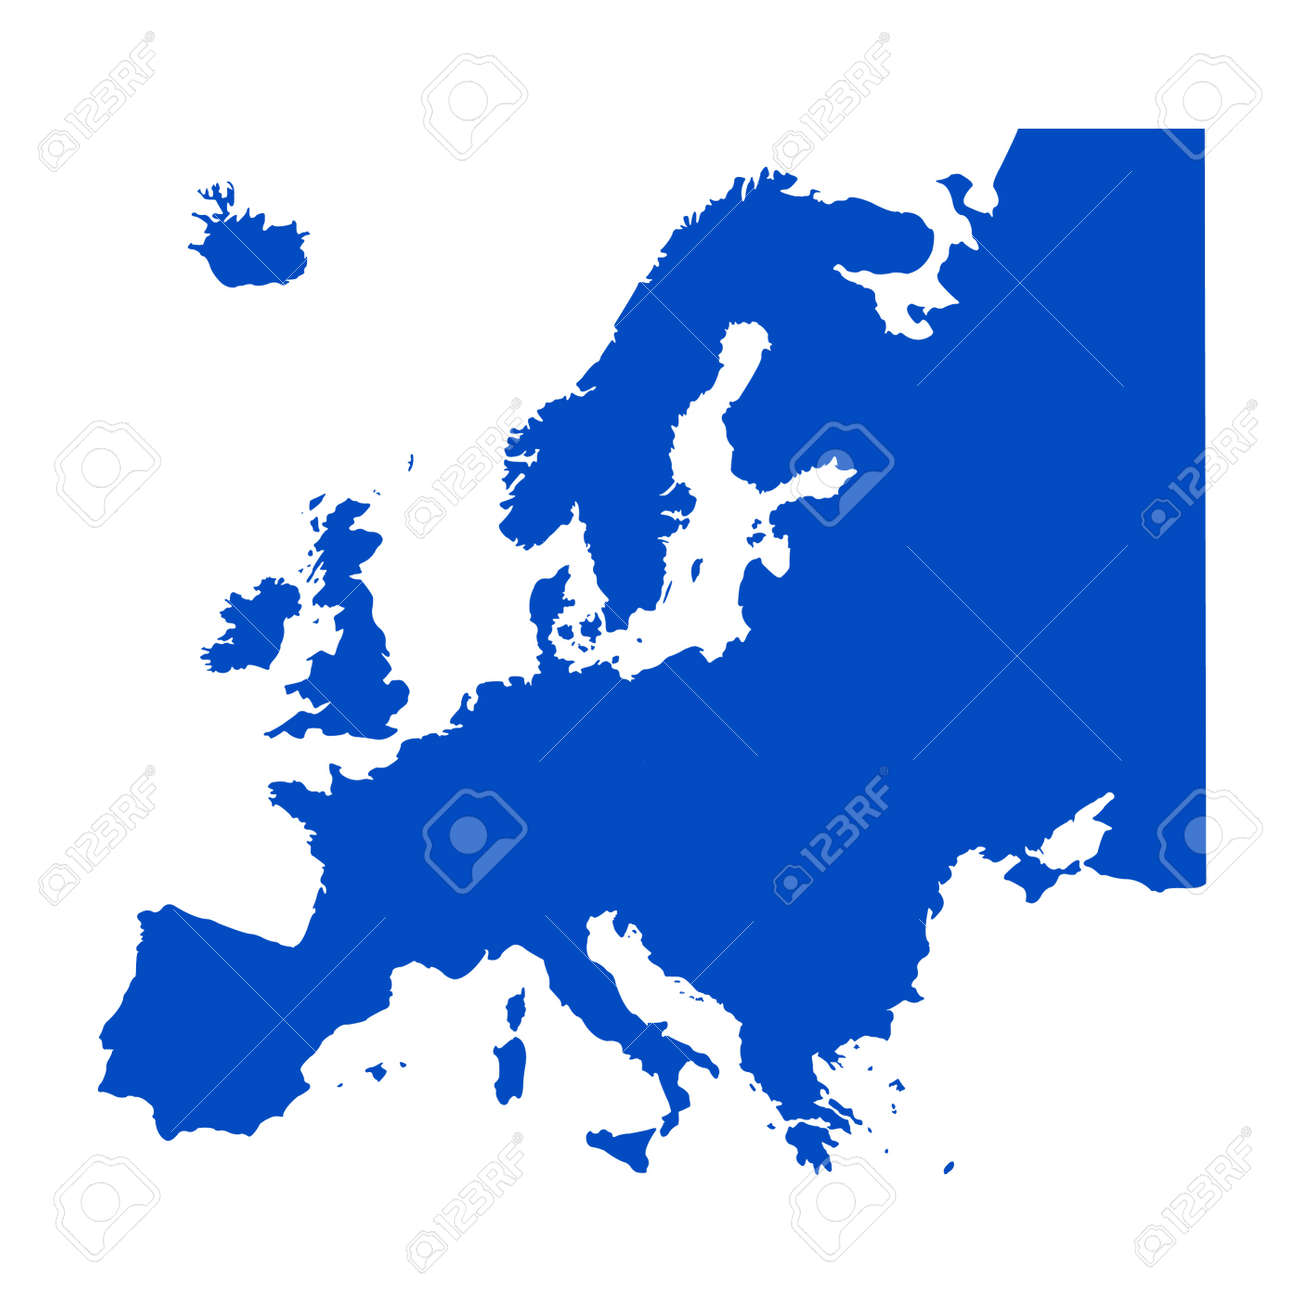 vector illustration of Europe Continent map - 145369954